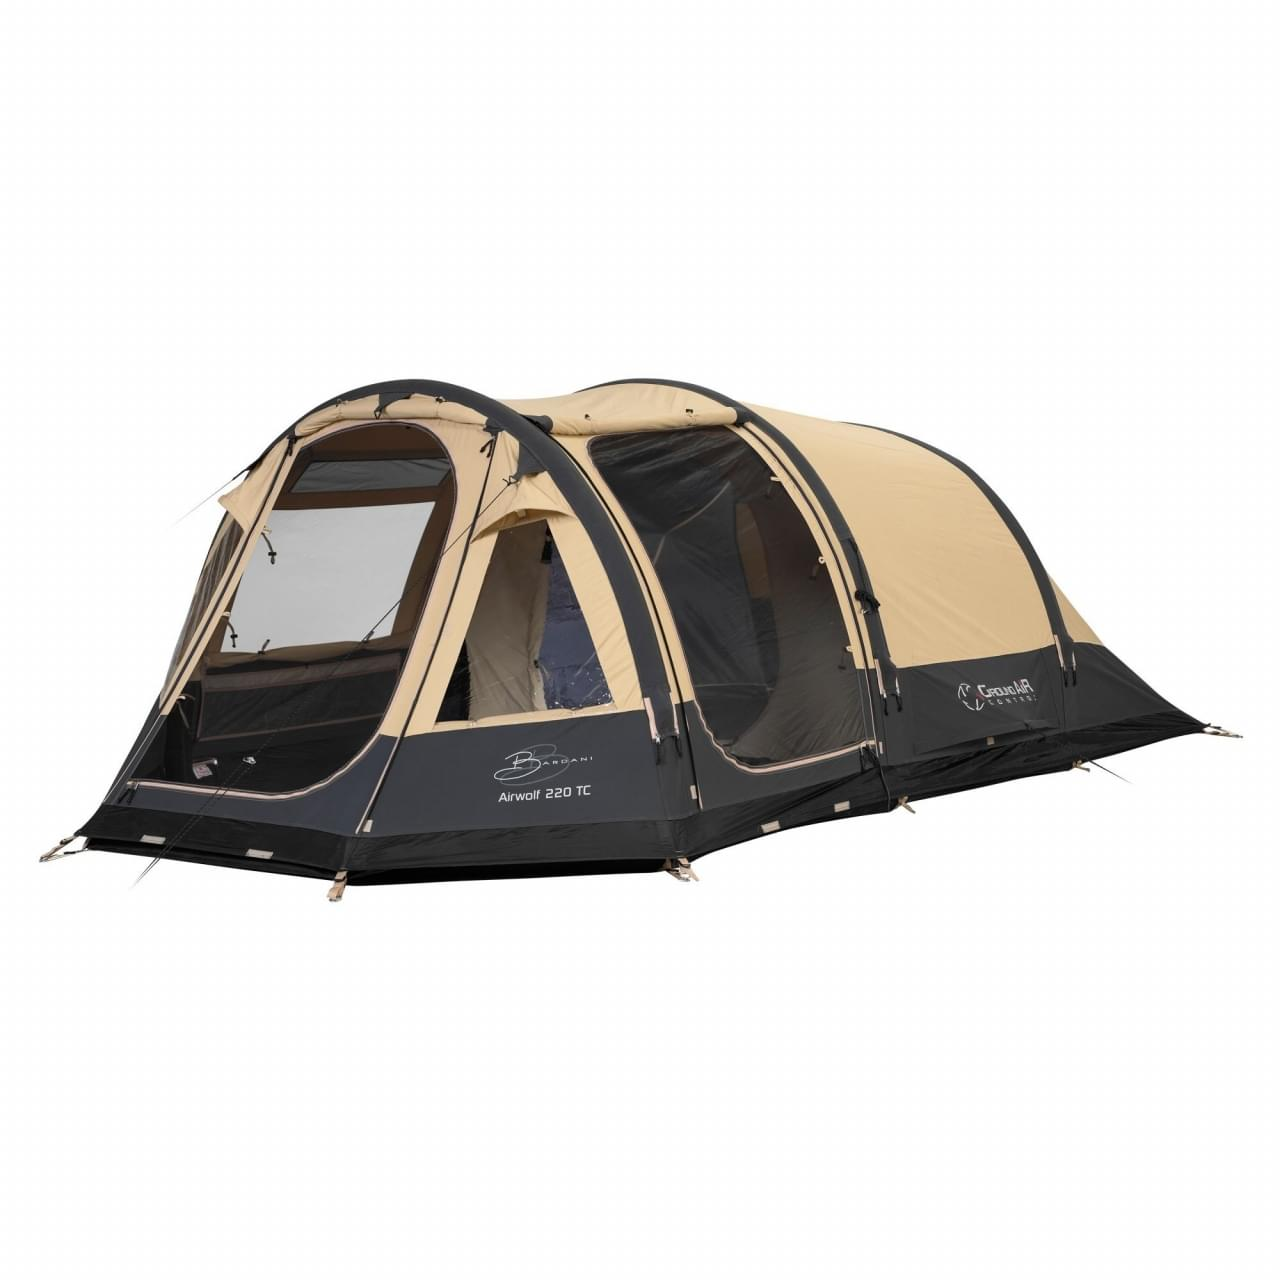 Bardani Airwolf 220 TC - 3 persoons tent